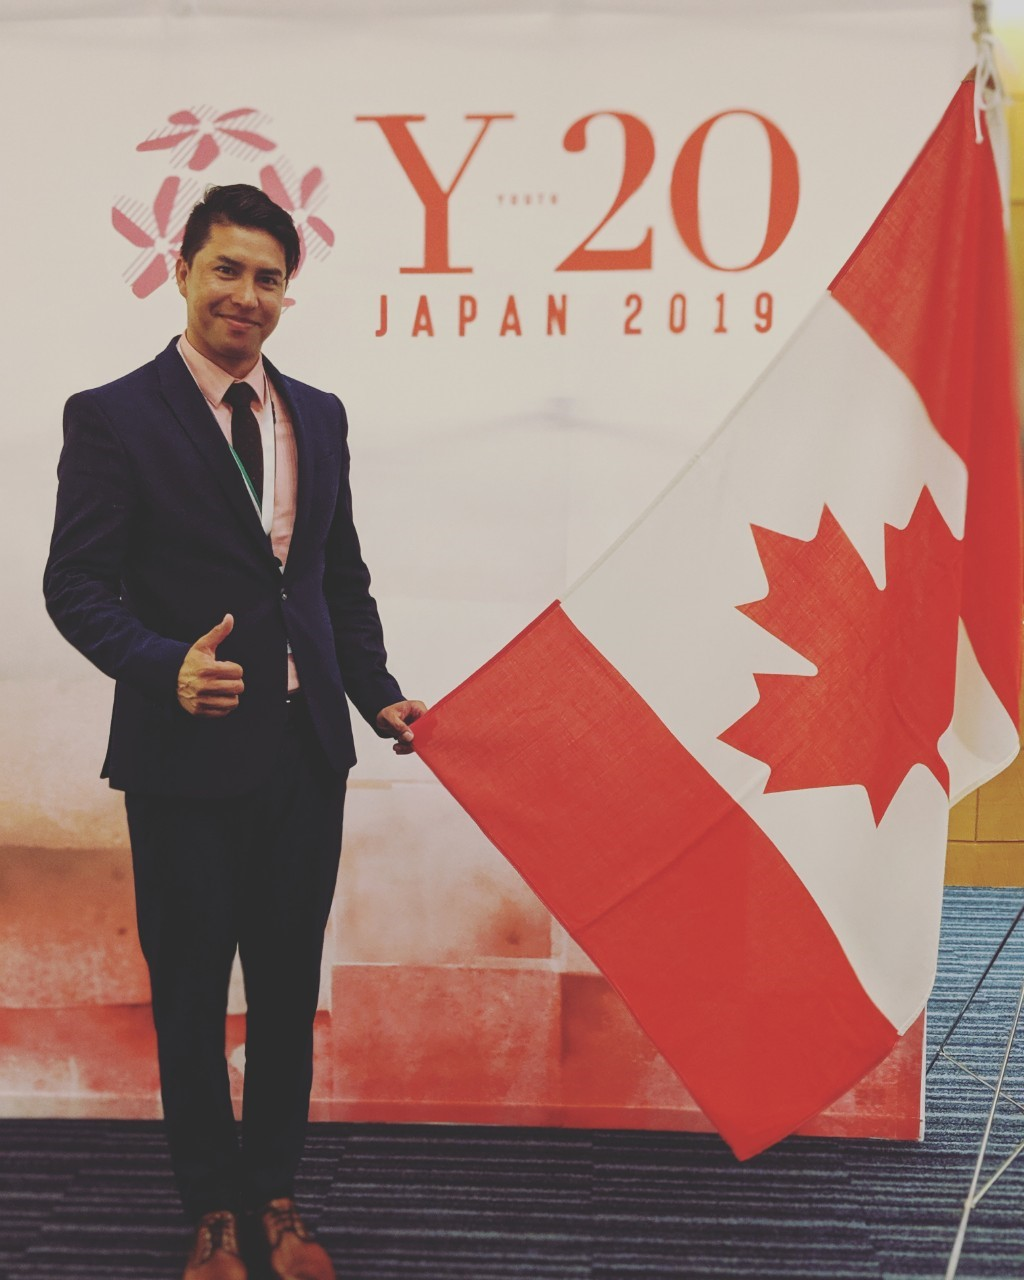 Ali Bahman stands next to a Canadian flag and in front of a sign for the G20 summit in Japan.